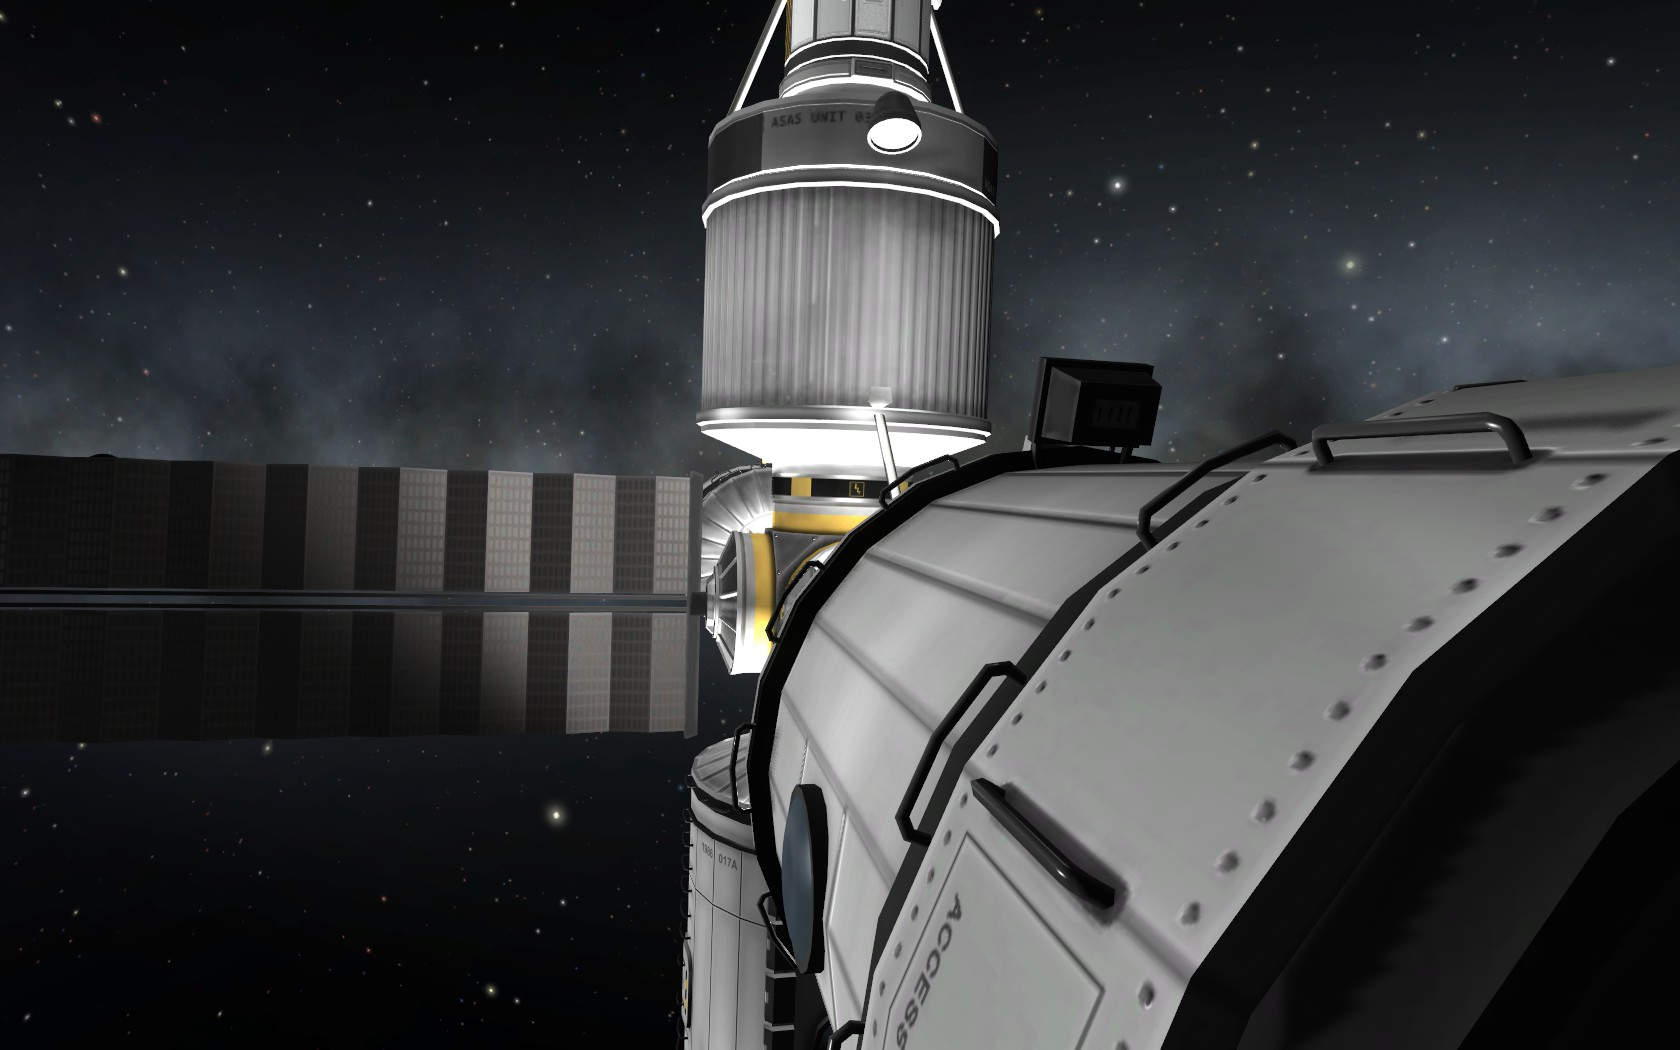 Space Station C3